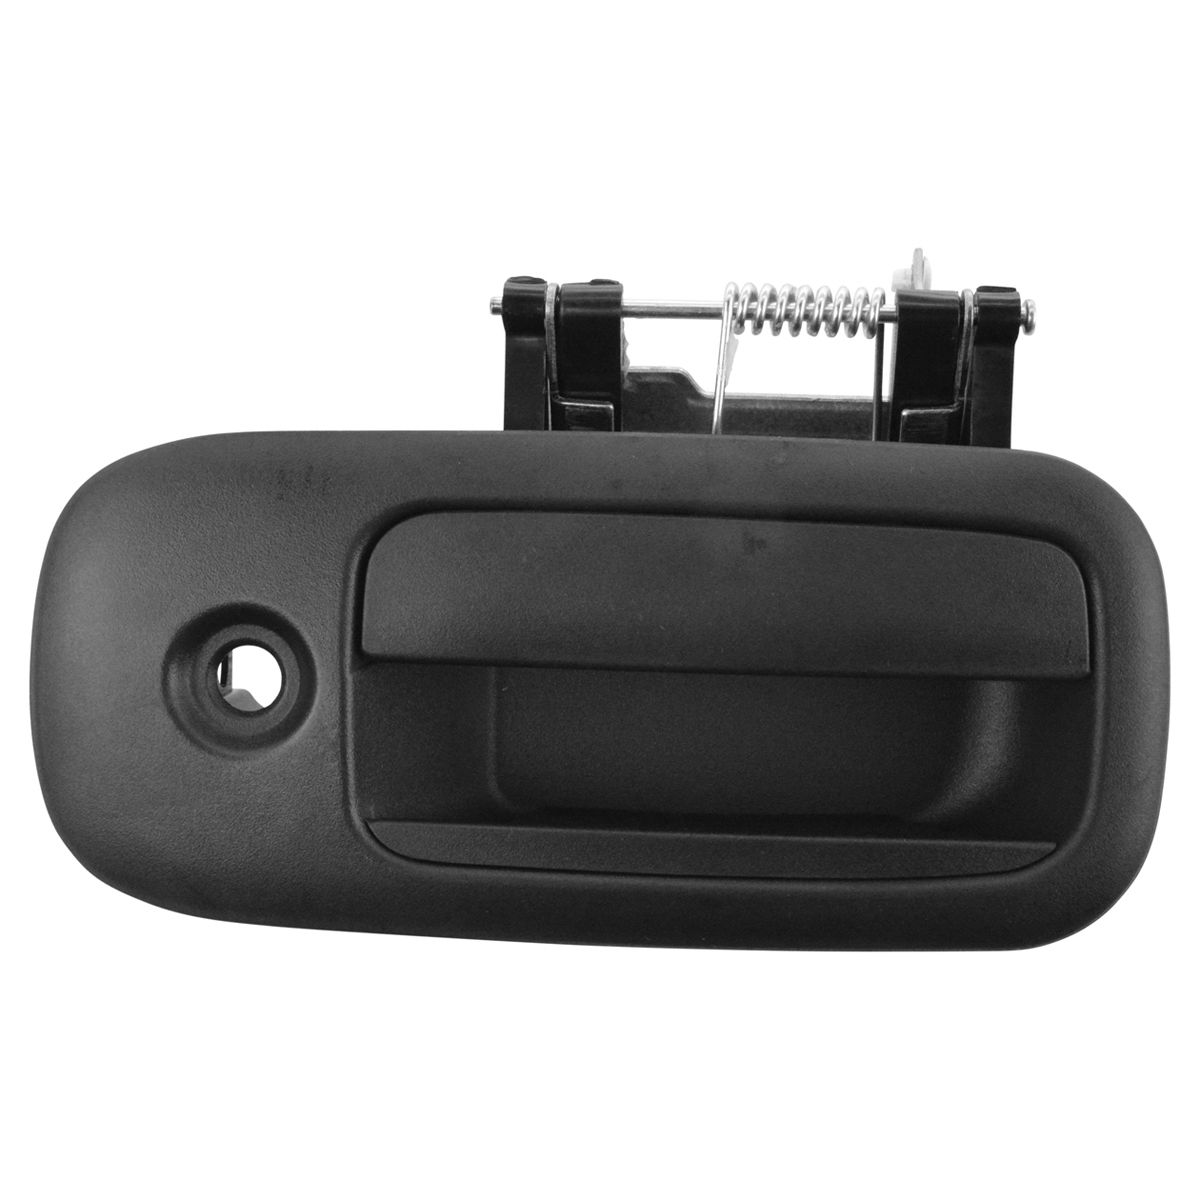 Front Right Side Sliding Outside Door Handle for Chevy Express GMC Savana Cargo